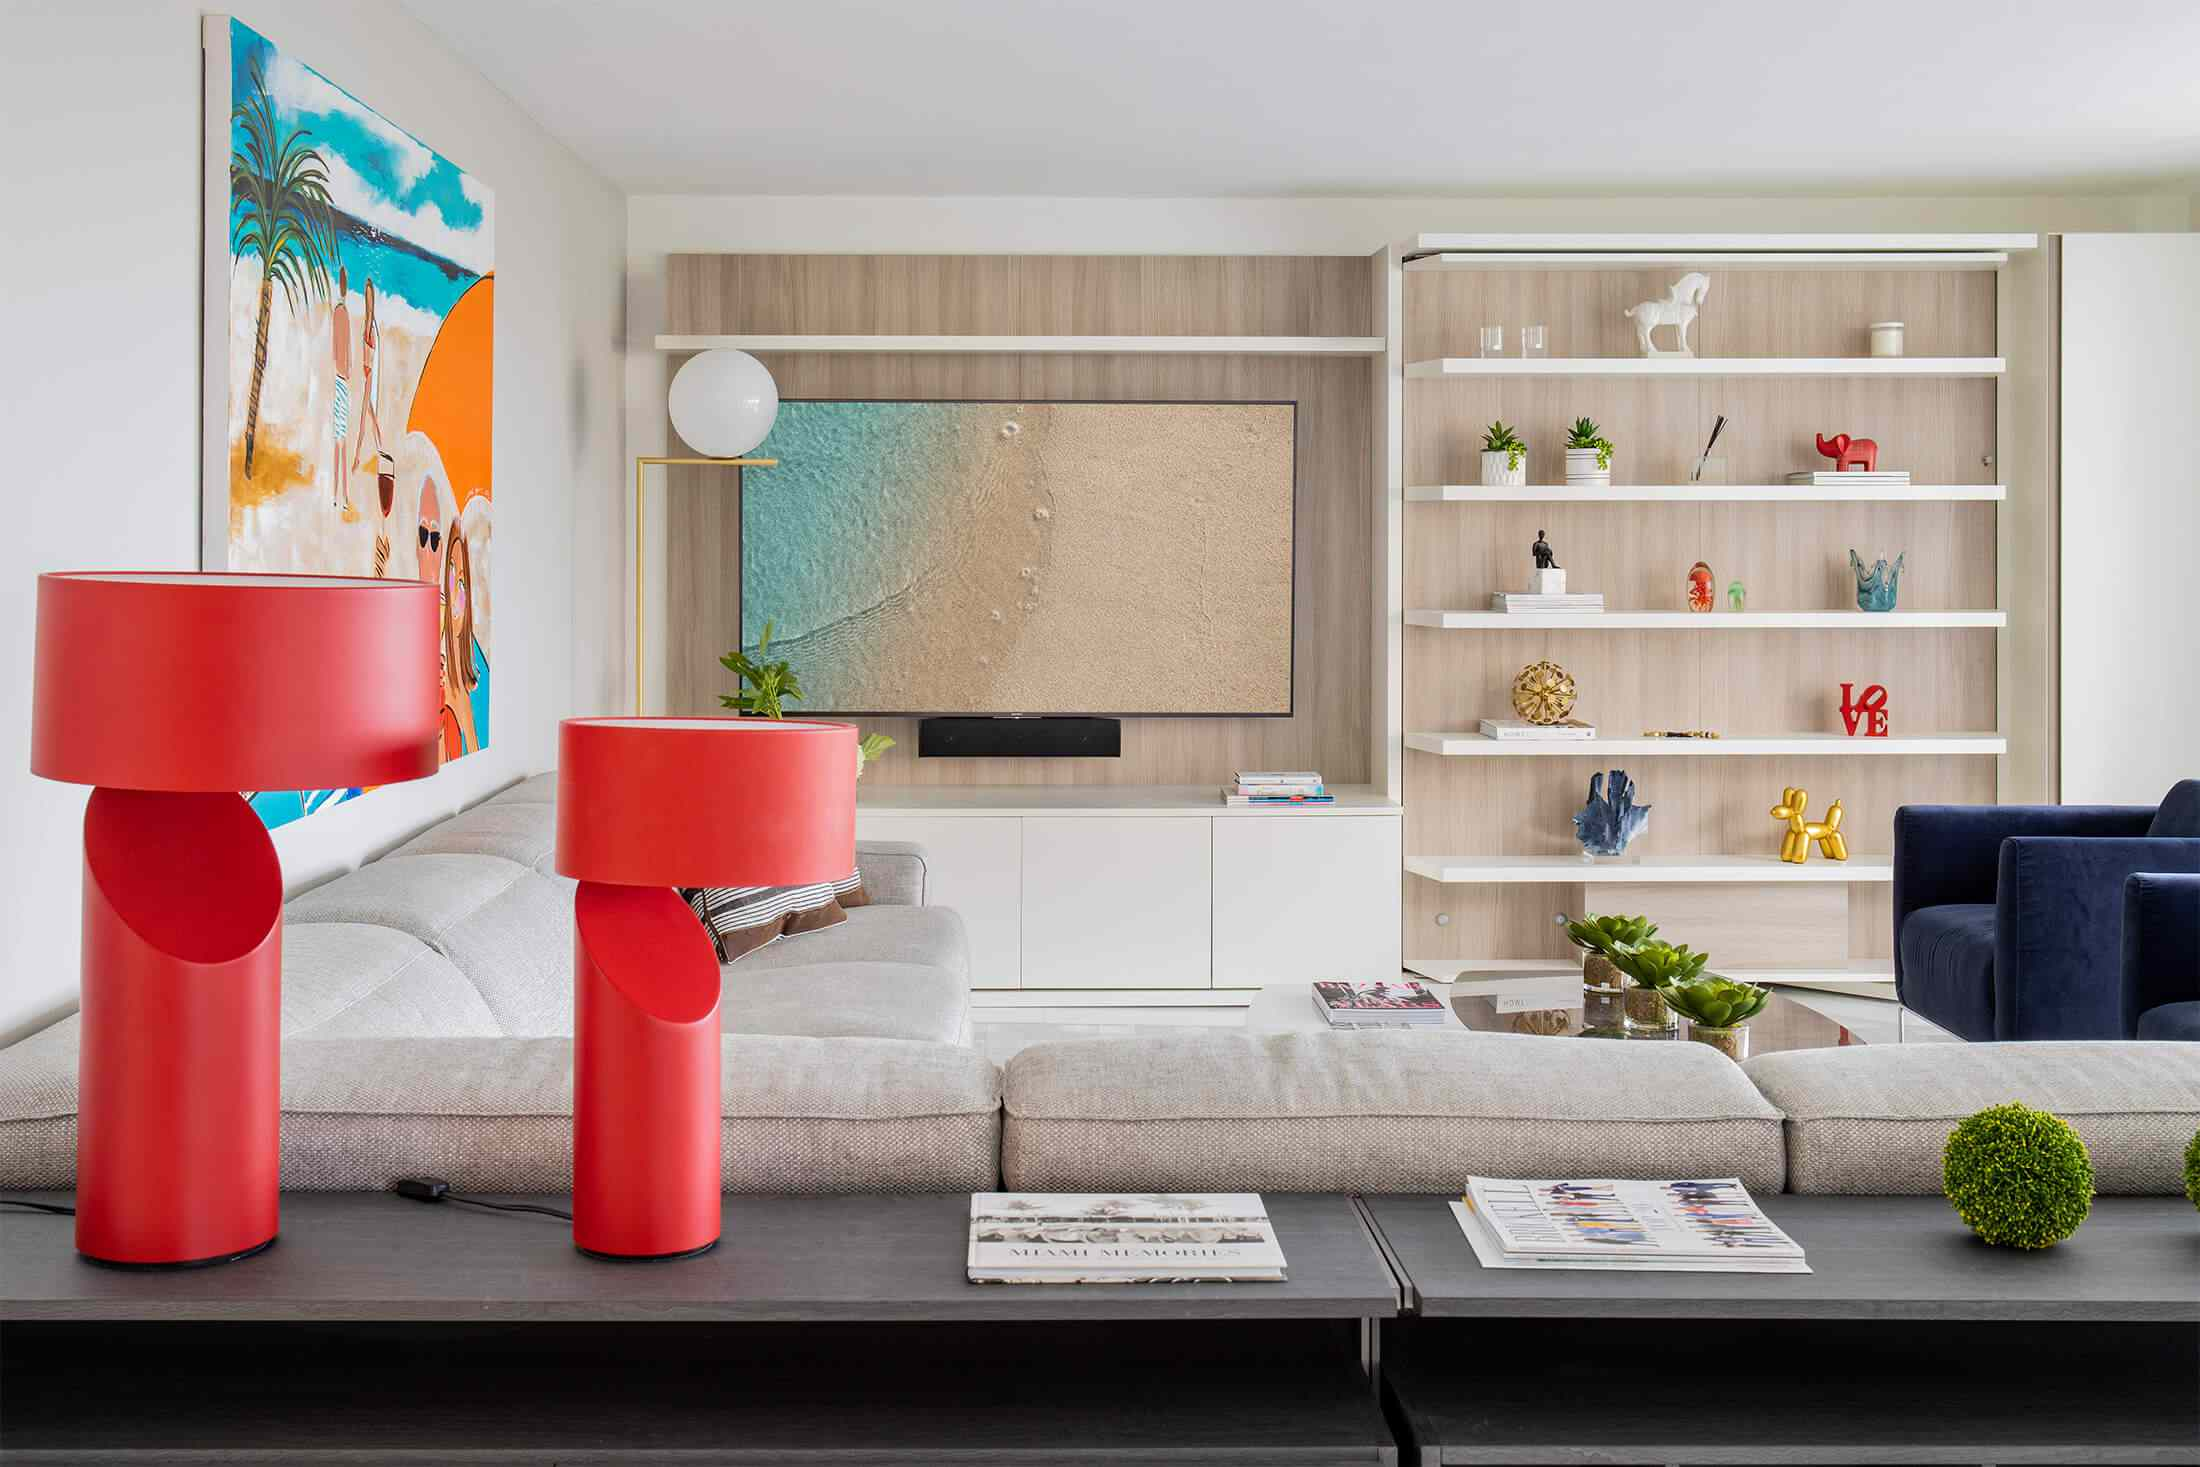 Living room with built-in media console, large colorful hanging art